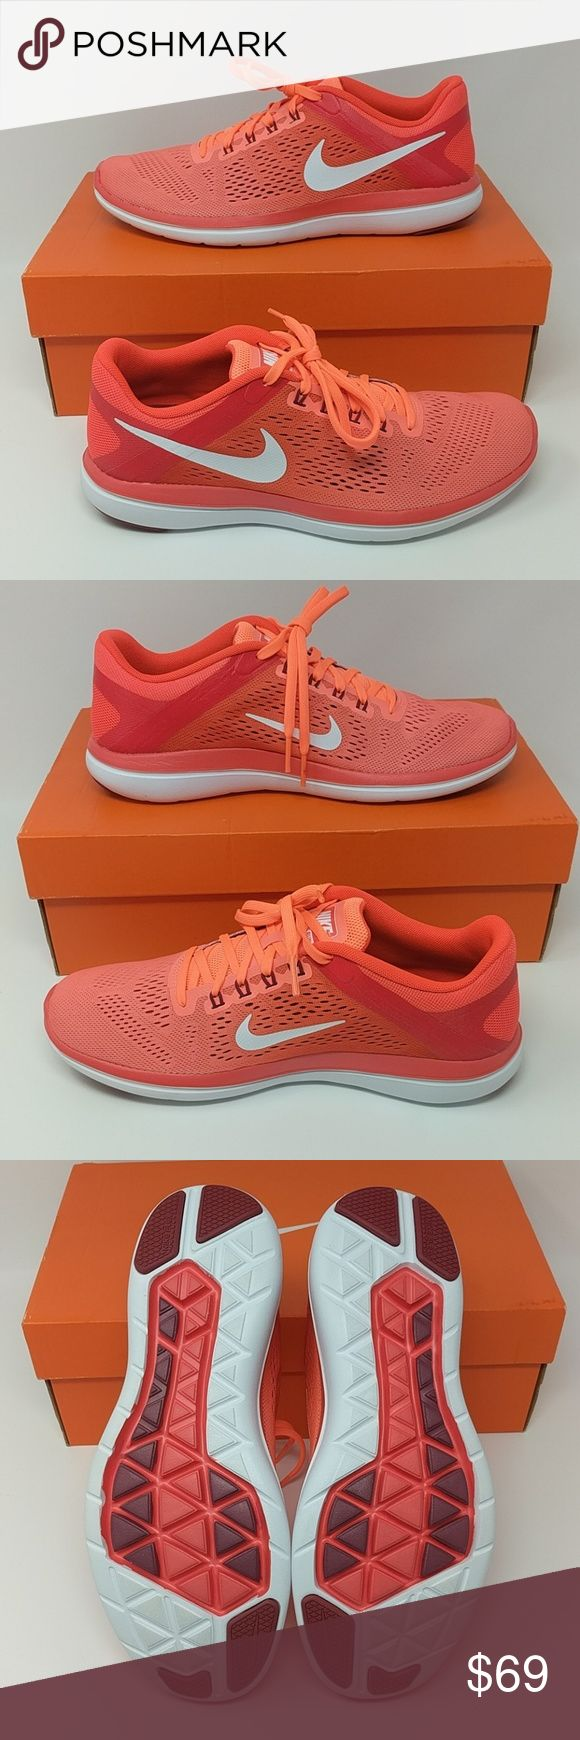 Nike Flex 2016 Run Shoes, Mango Brand new pair of Nike running shoes in bright mango/white. Nike Shoes Athletic Shoes